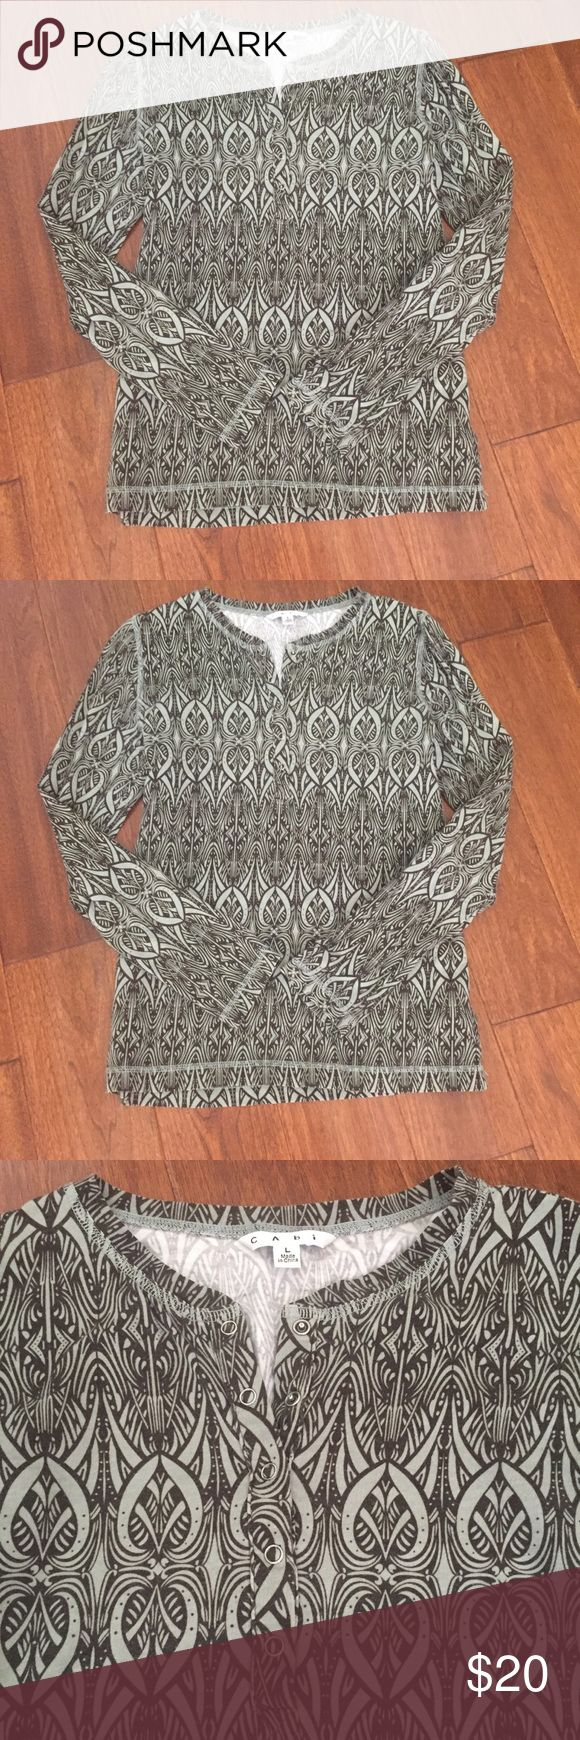 Cabi Henley Long sleeve top has five snaps in center front to adjust to your liking. Comfort fit. 95% cotton, 5% spandex. Color is soft brown and aqua Tops